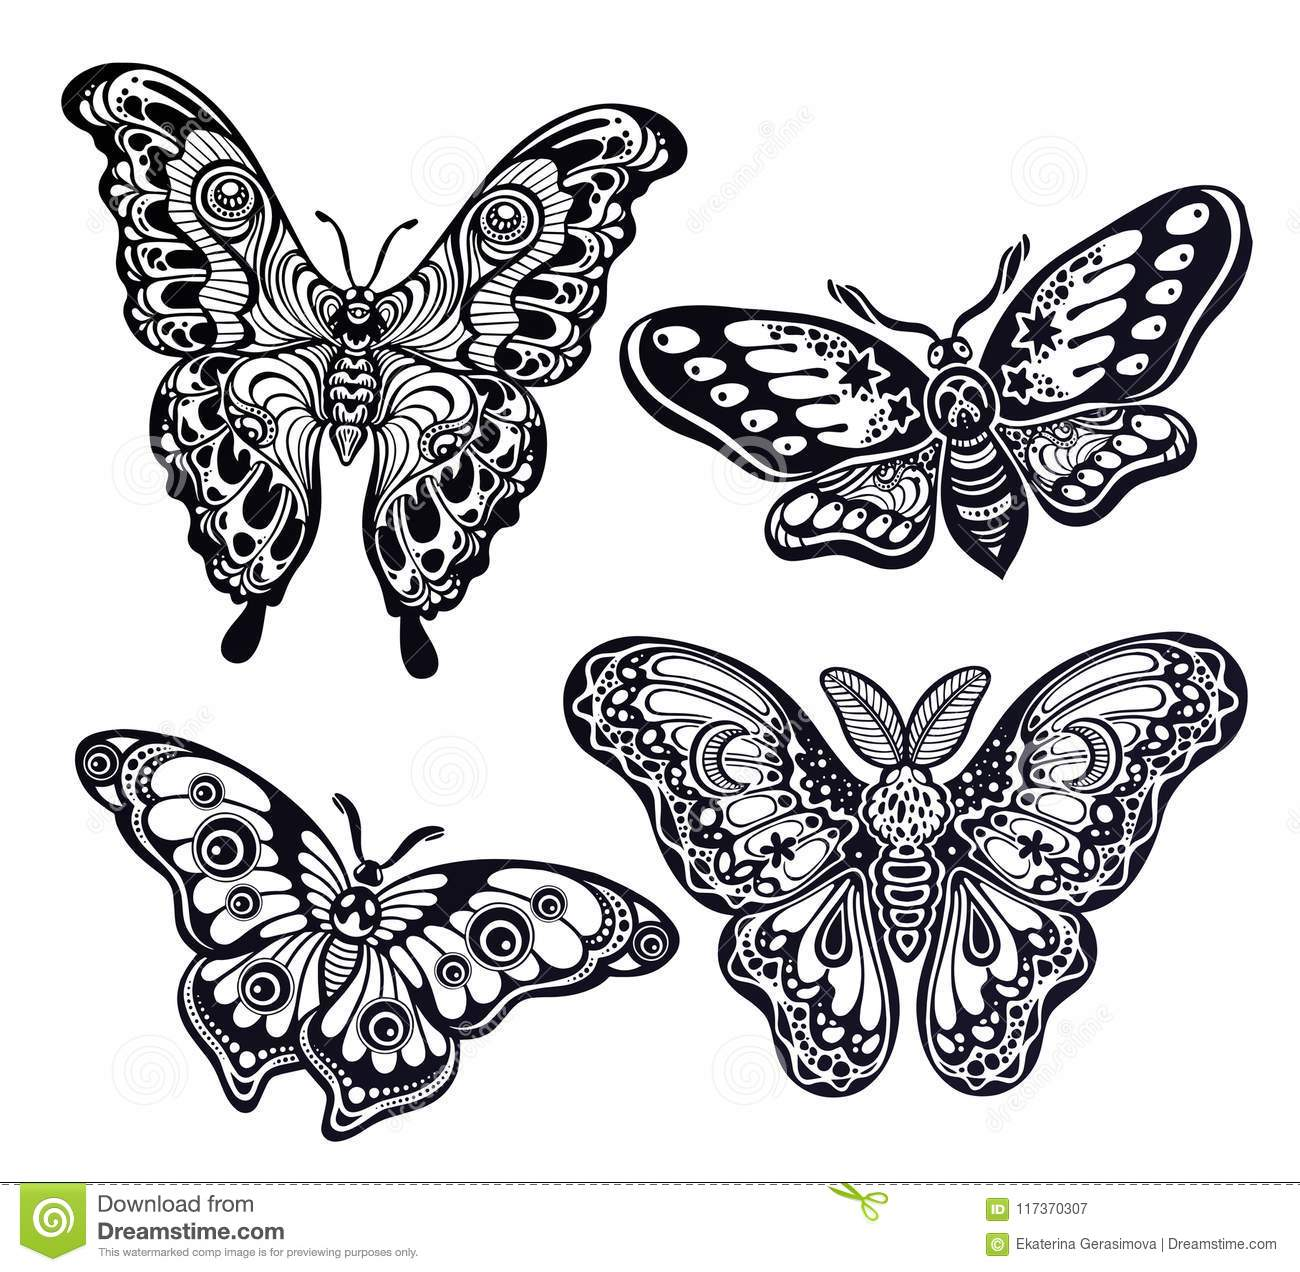 3c6ef7243b2d7 Beautiful, illustration. Royalty-Free Vector. A collection of butterflies  or moths. A set of fantasy style ornate insects